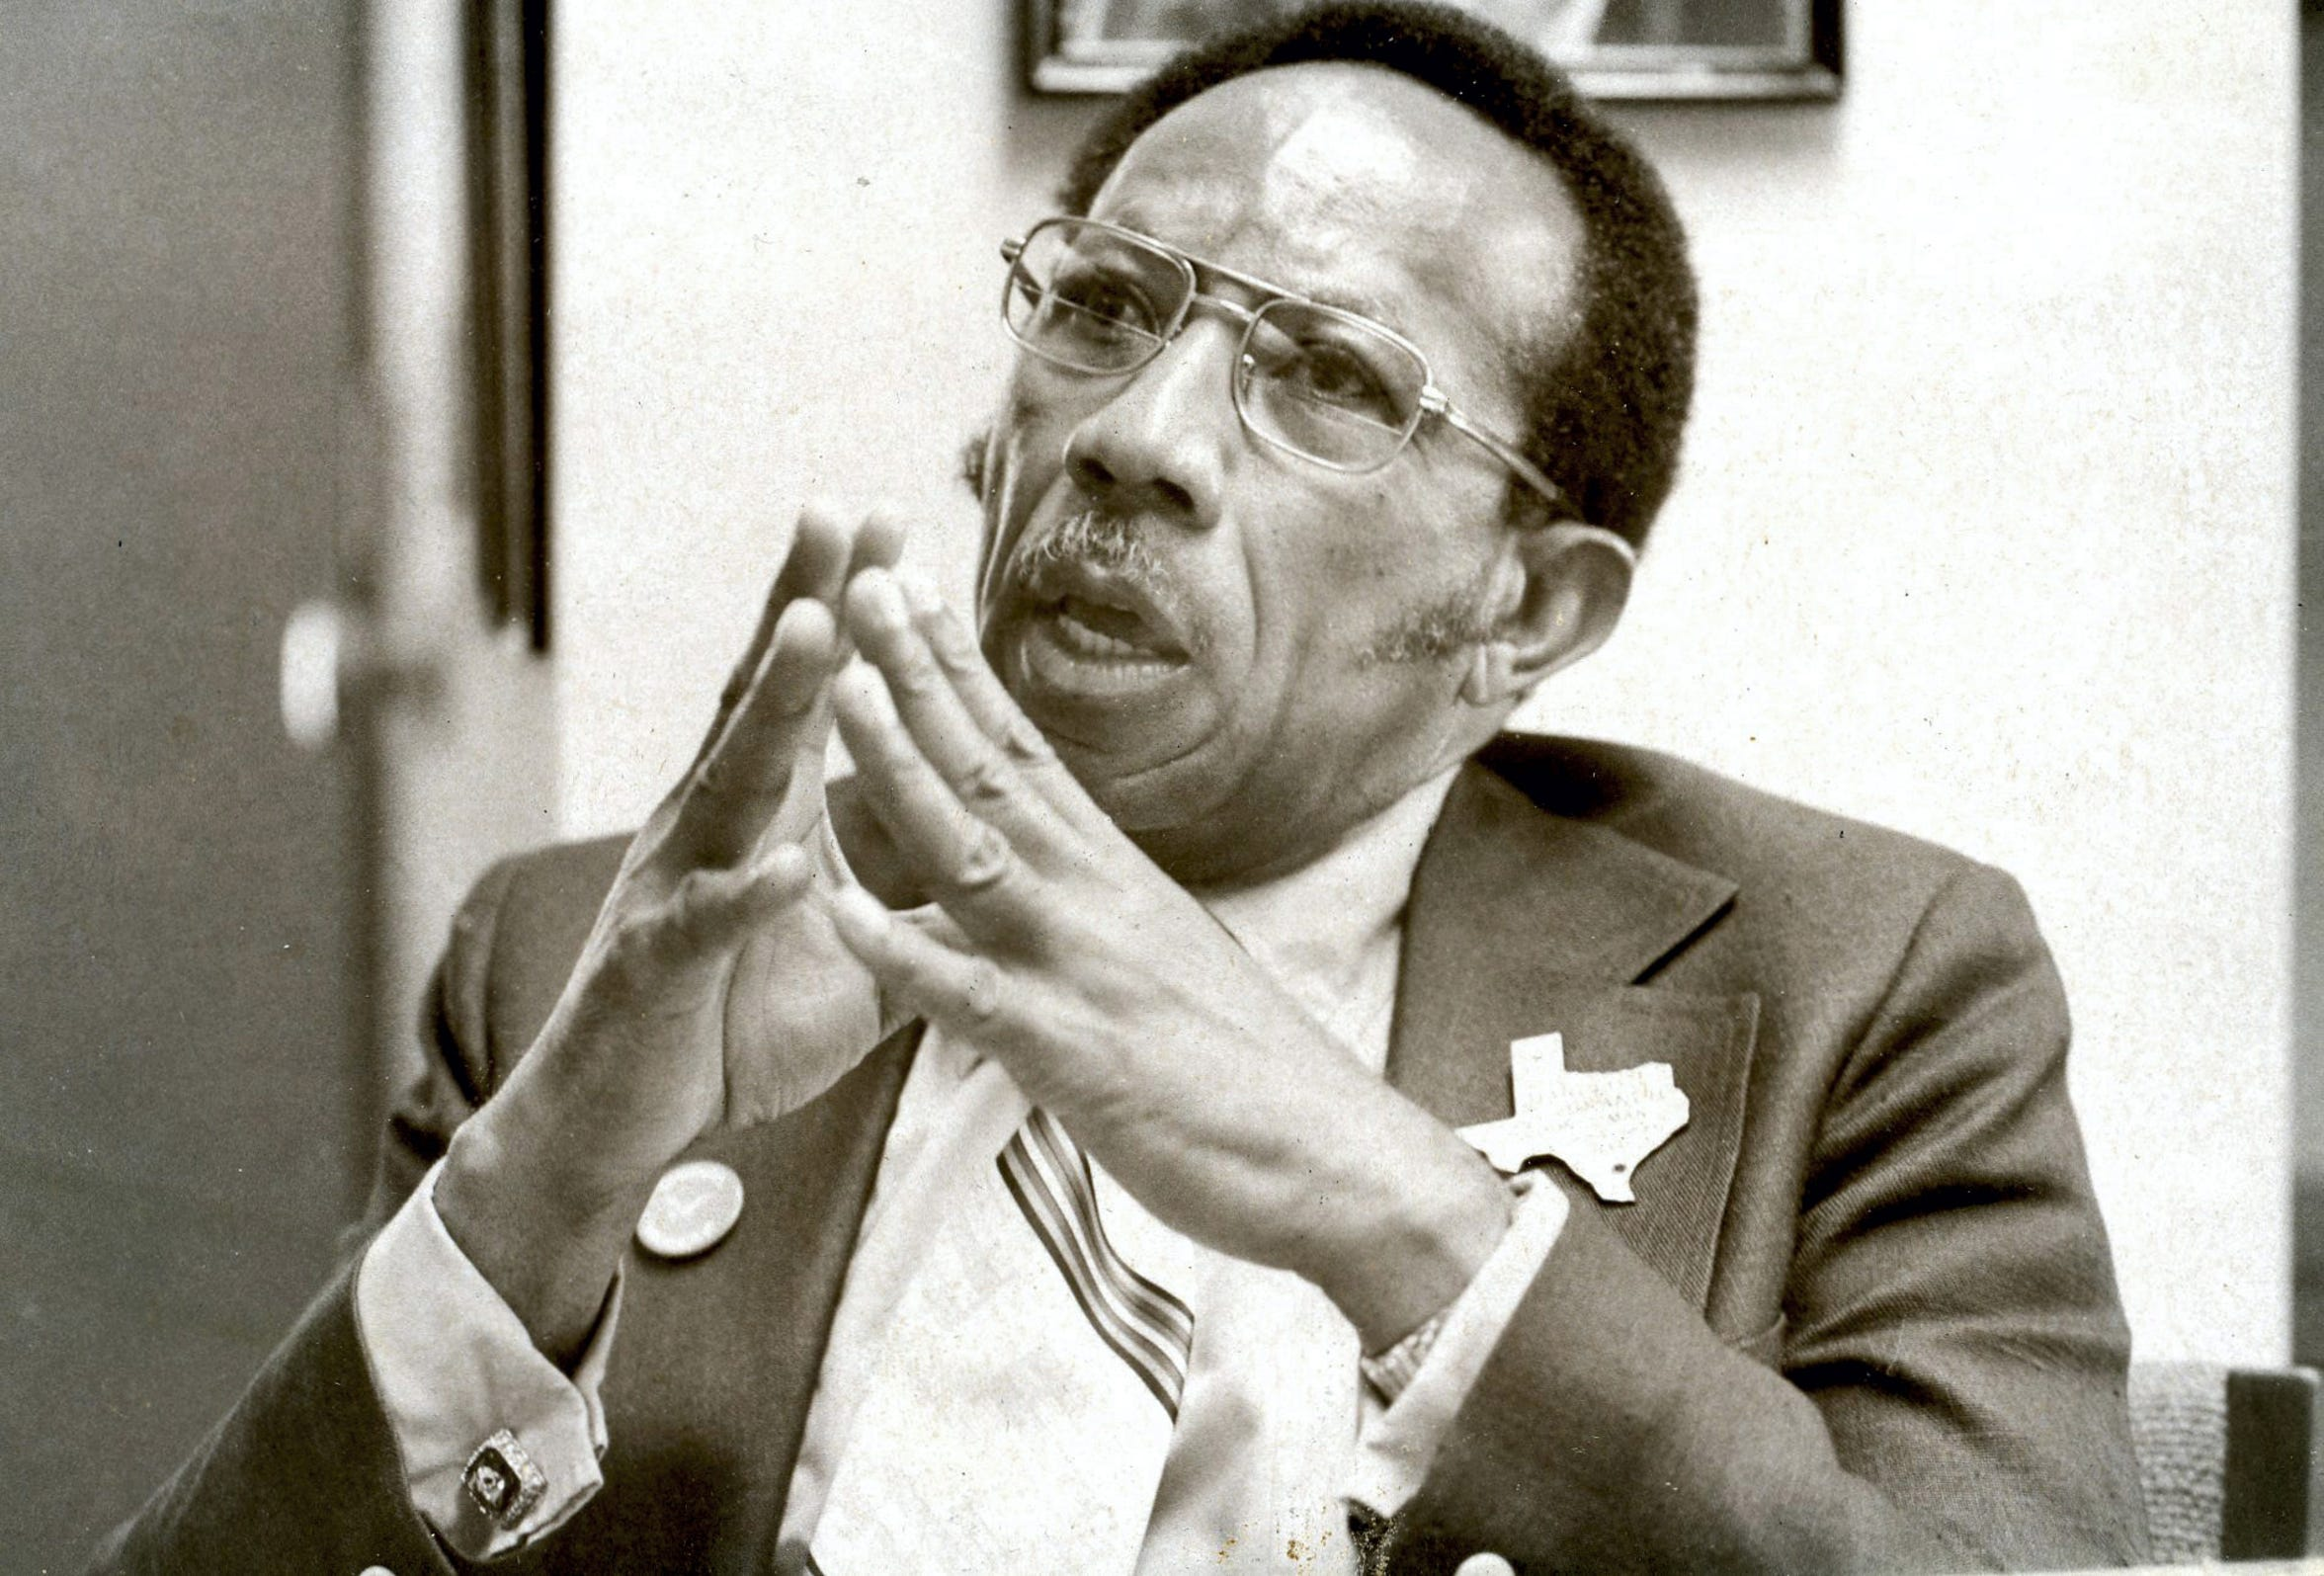 Rev. Harold T. Branch talks about his campaign for mayor on April 27, 1975.